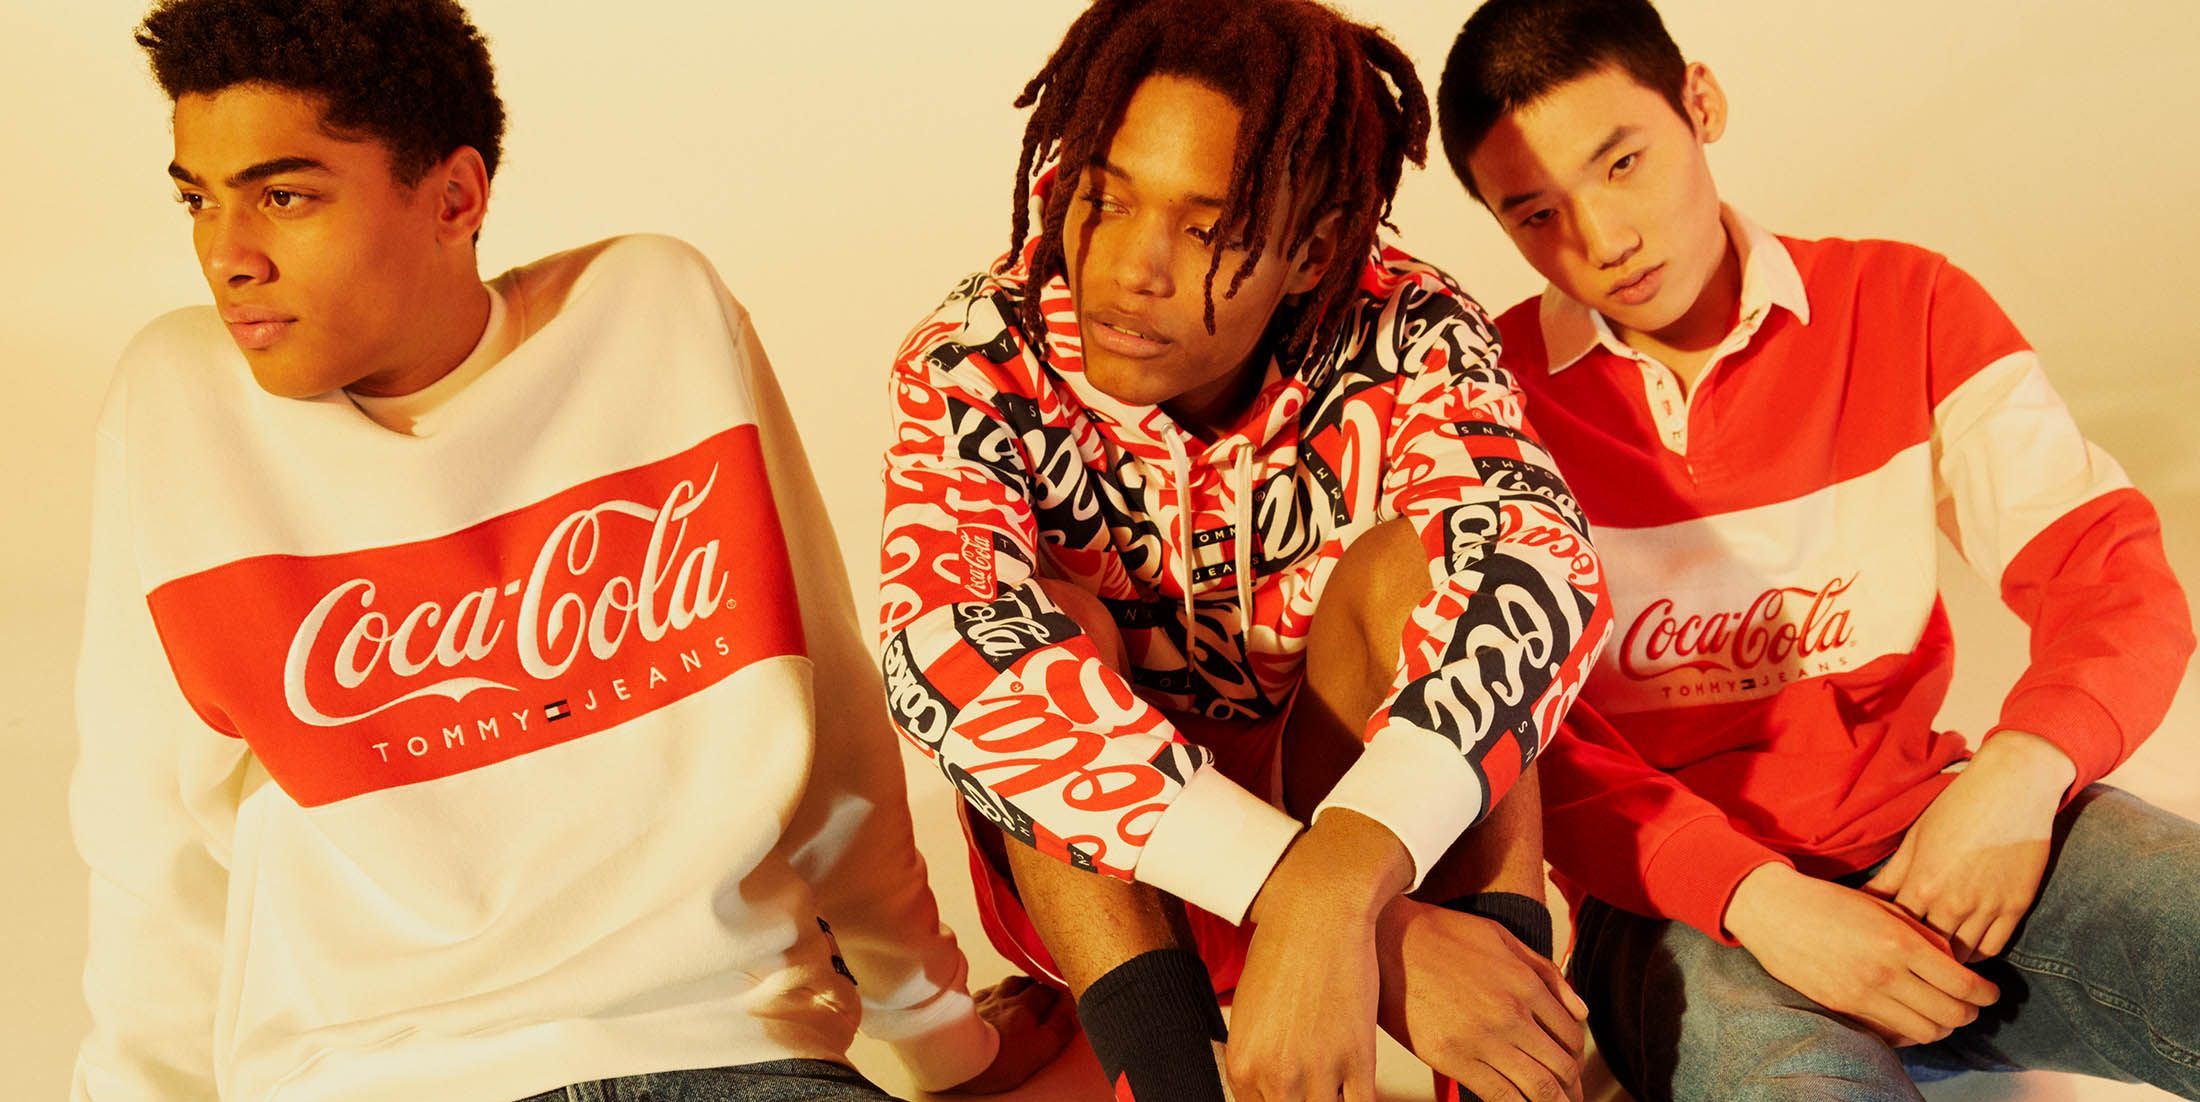 It's a remake of the 1986 original—and it's part of a larger capsule collection.